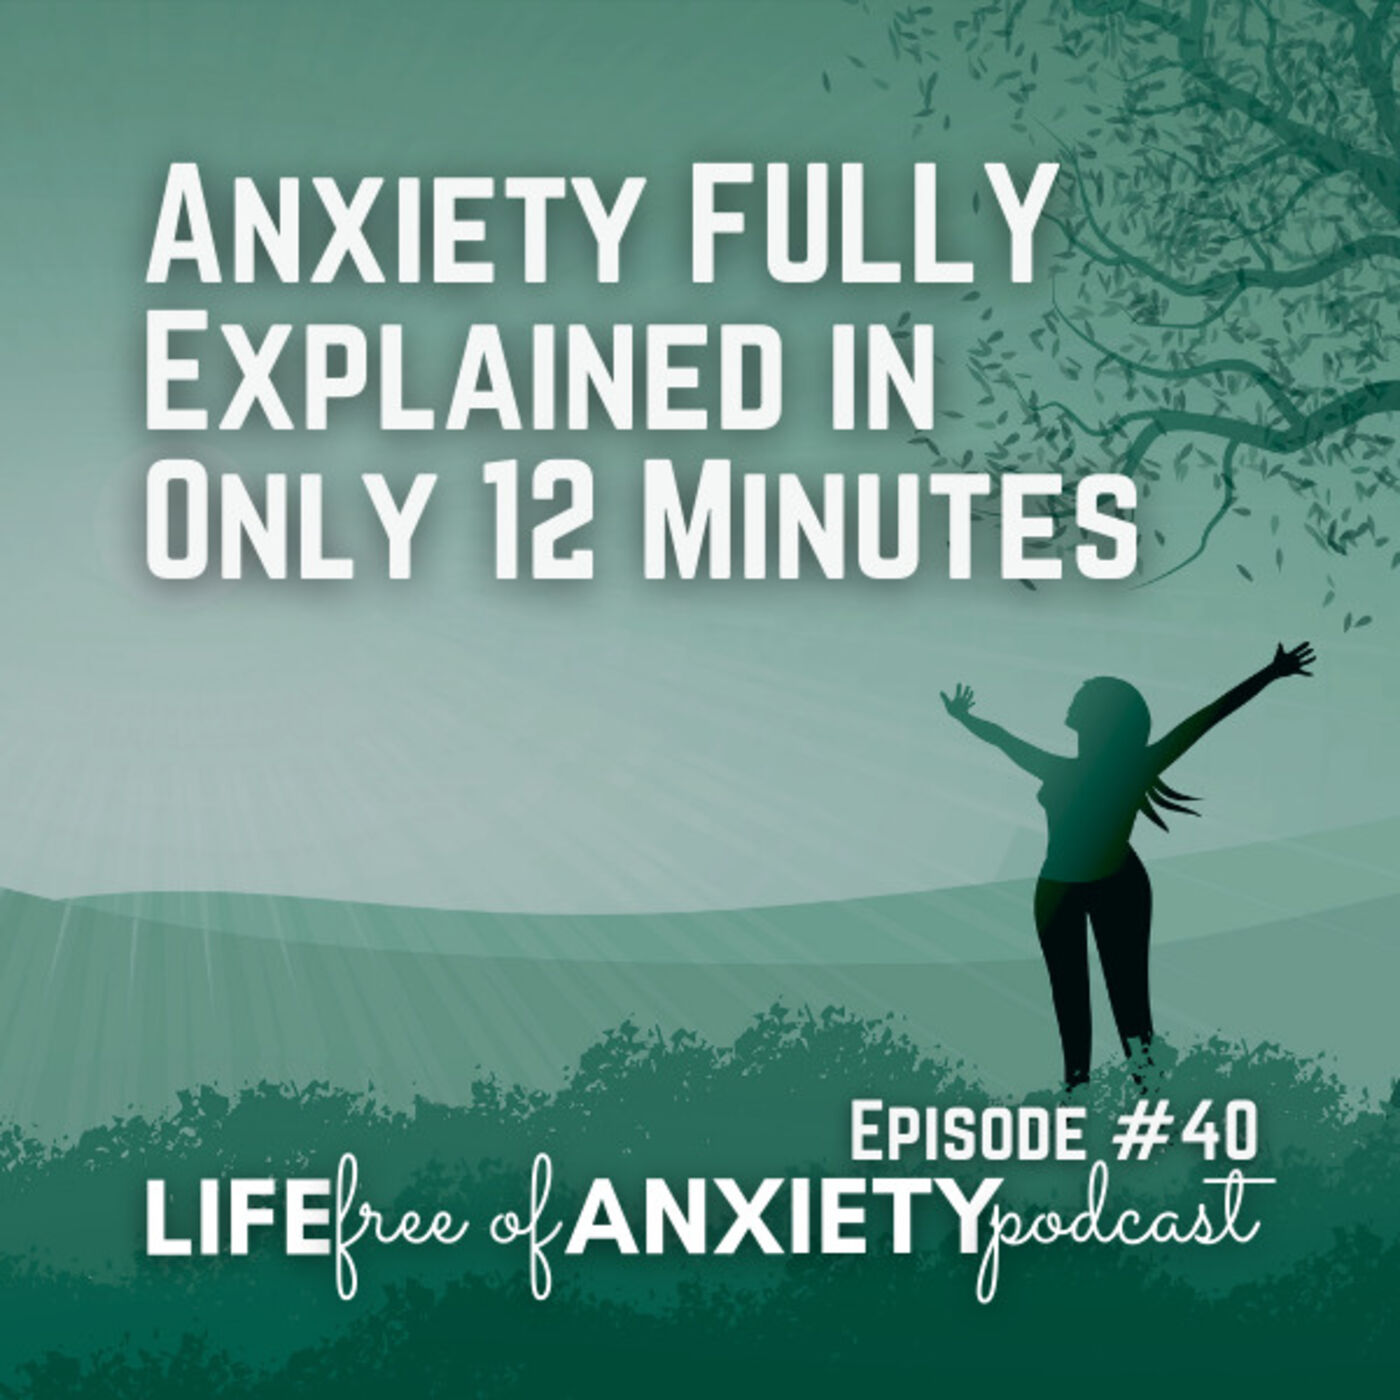 40-Anxiety Fully Explained, an Excerpt from the CHAANGE Anxiety Treatment Program